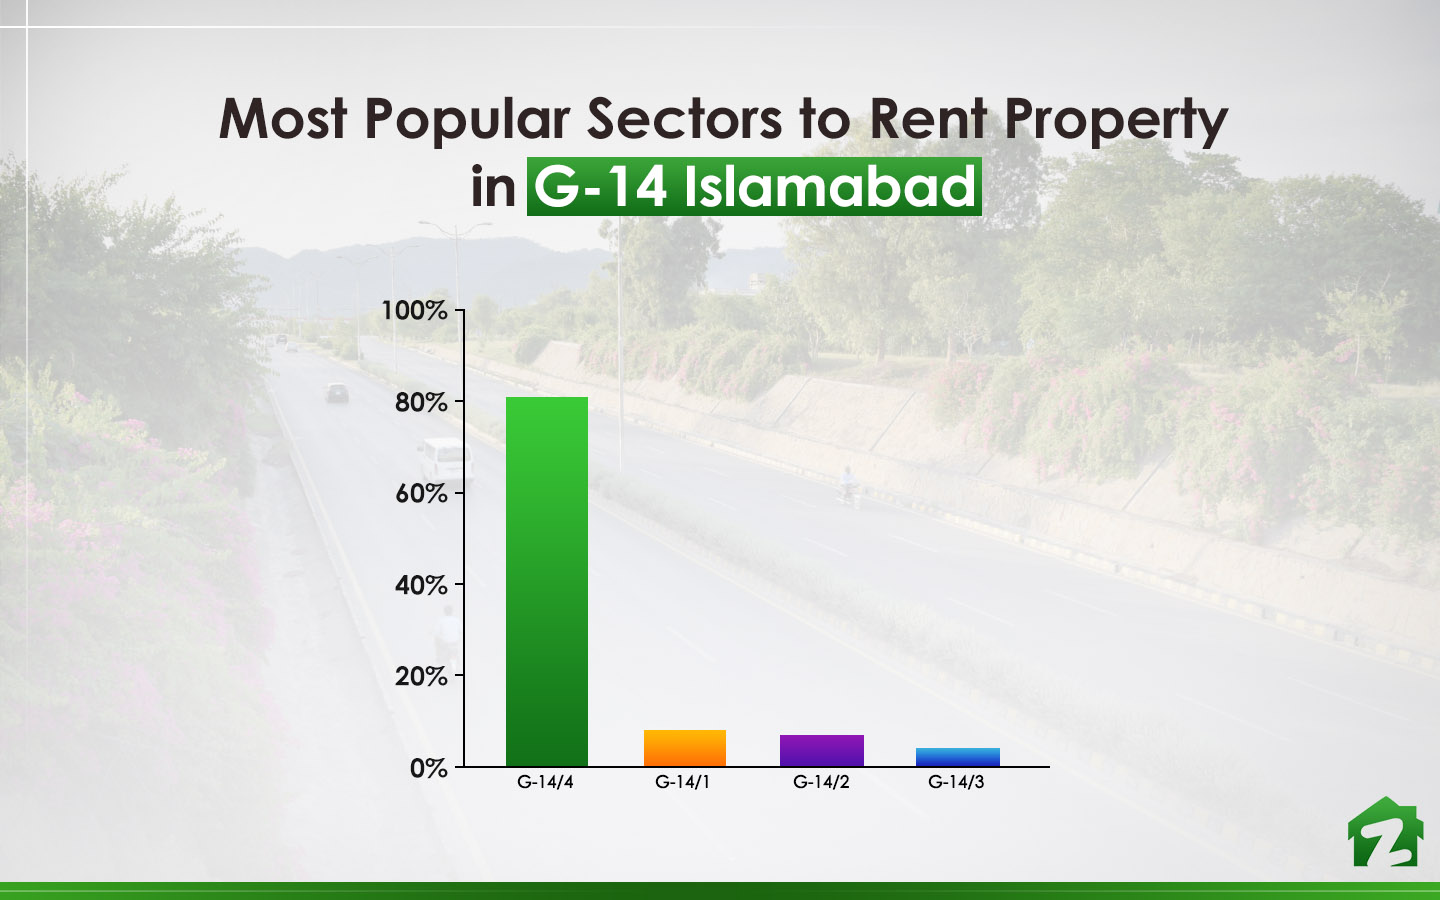 The Popular Sectors to rent Property in G-14 Islamabad